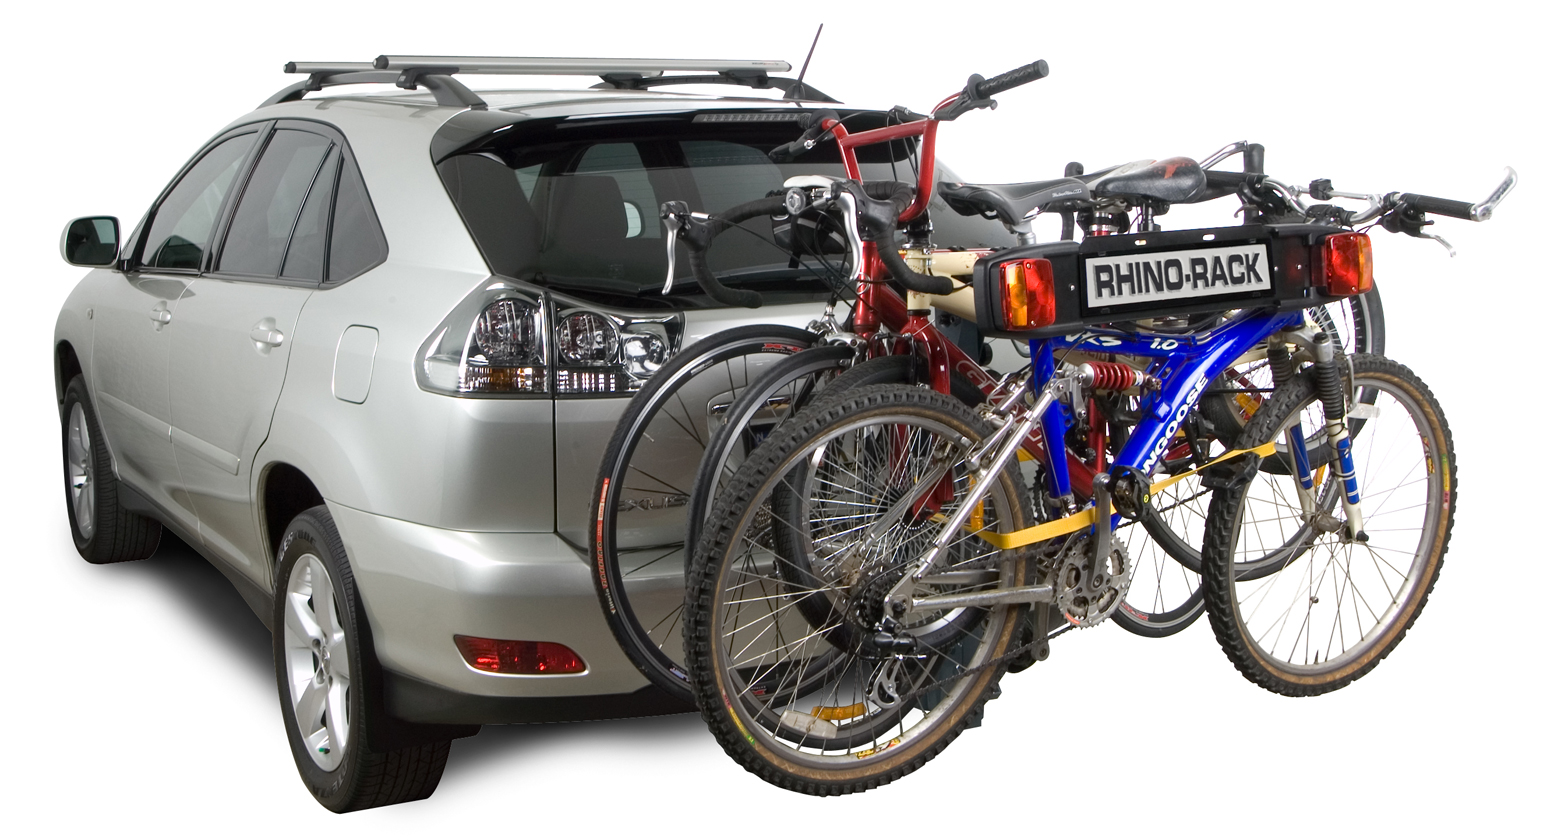 Size Of Bike Rack Number Plate  sc 1 st  xnuvo.com & Surprising Size Of Bike Rack Number Plate Ideas - Best Image Engine ...